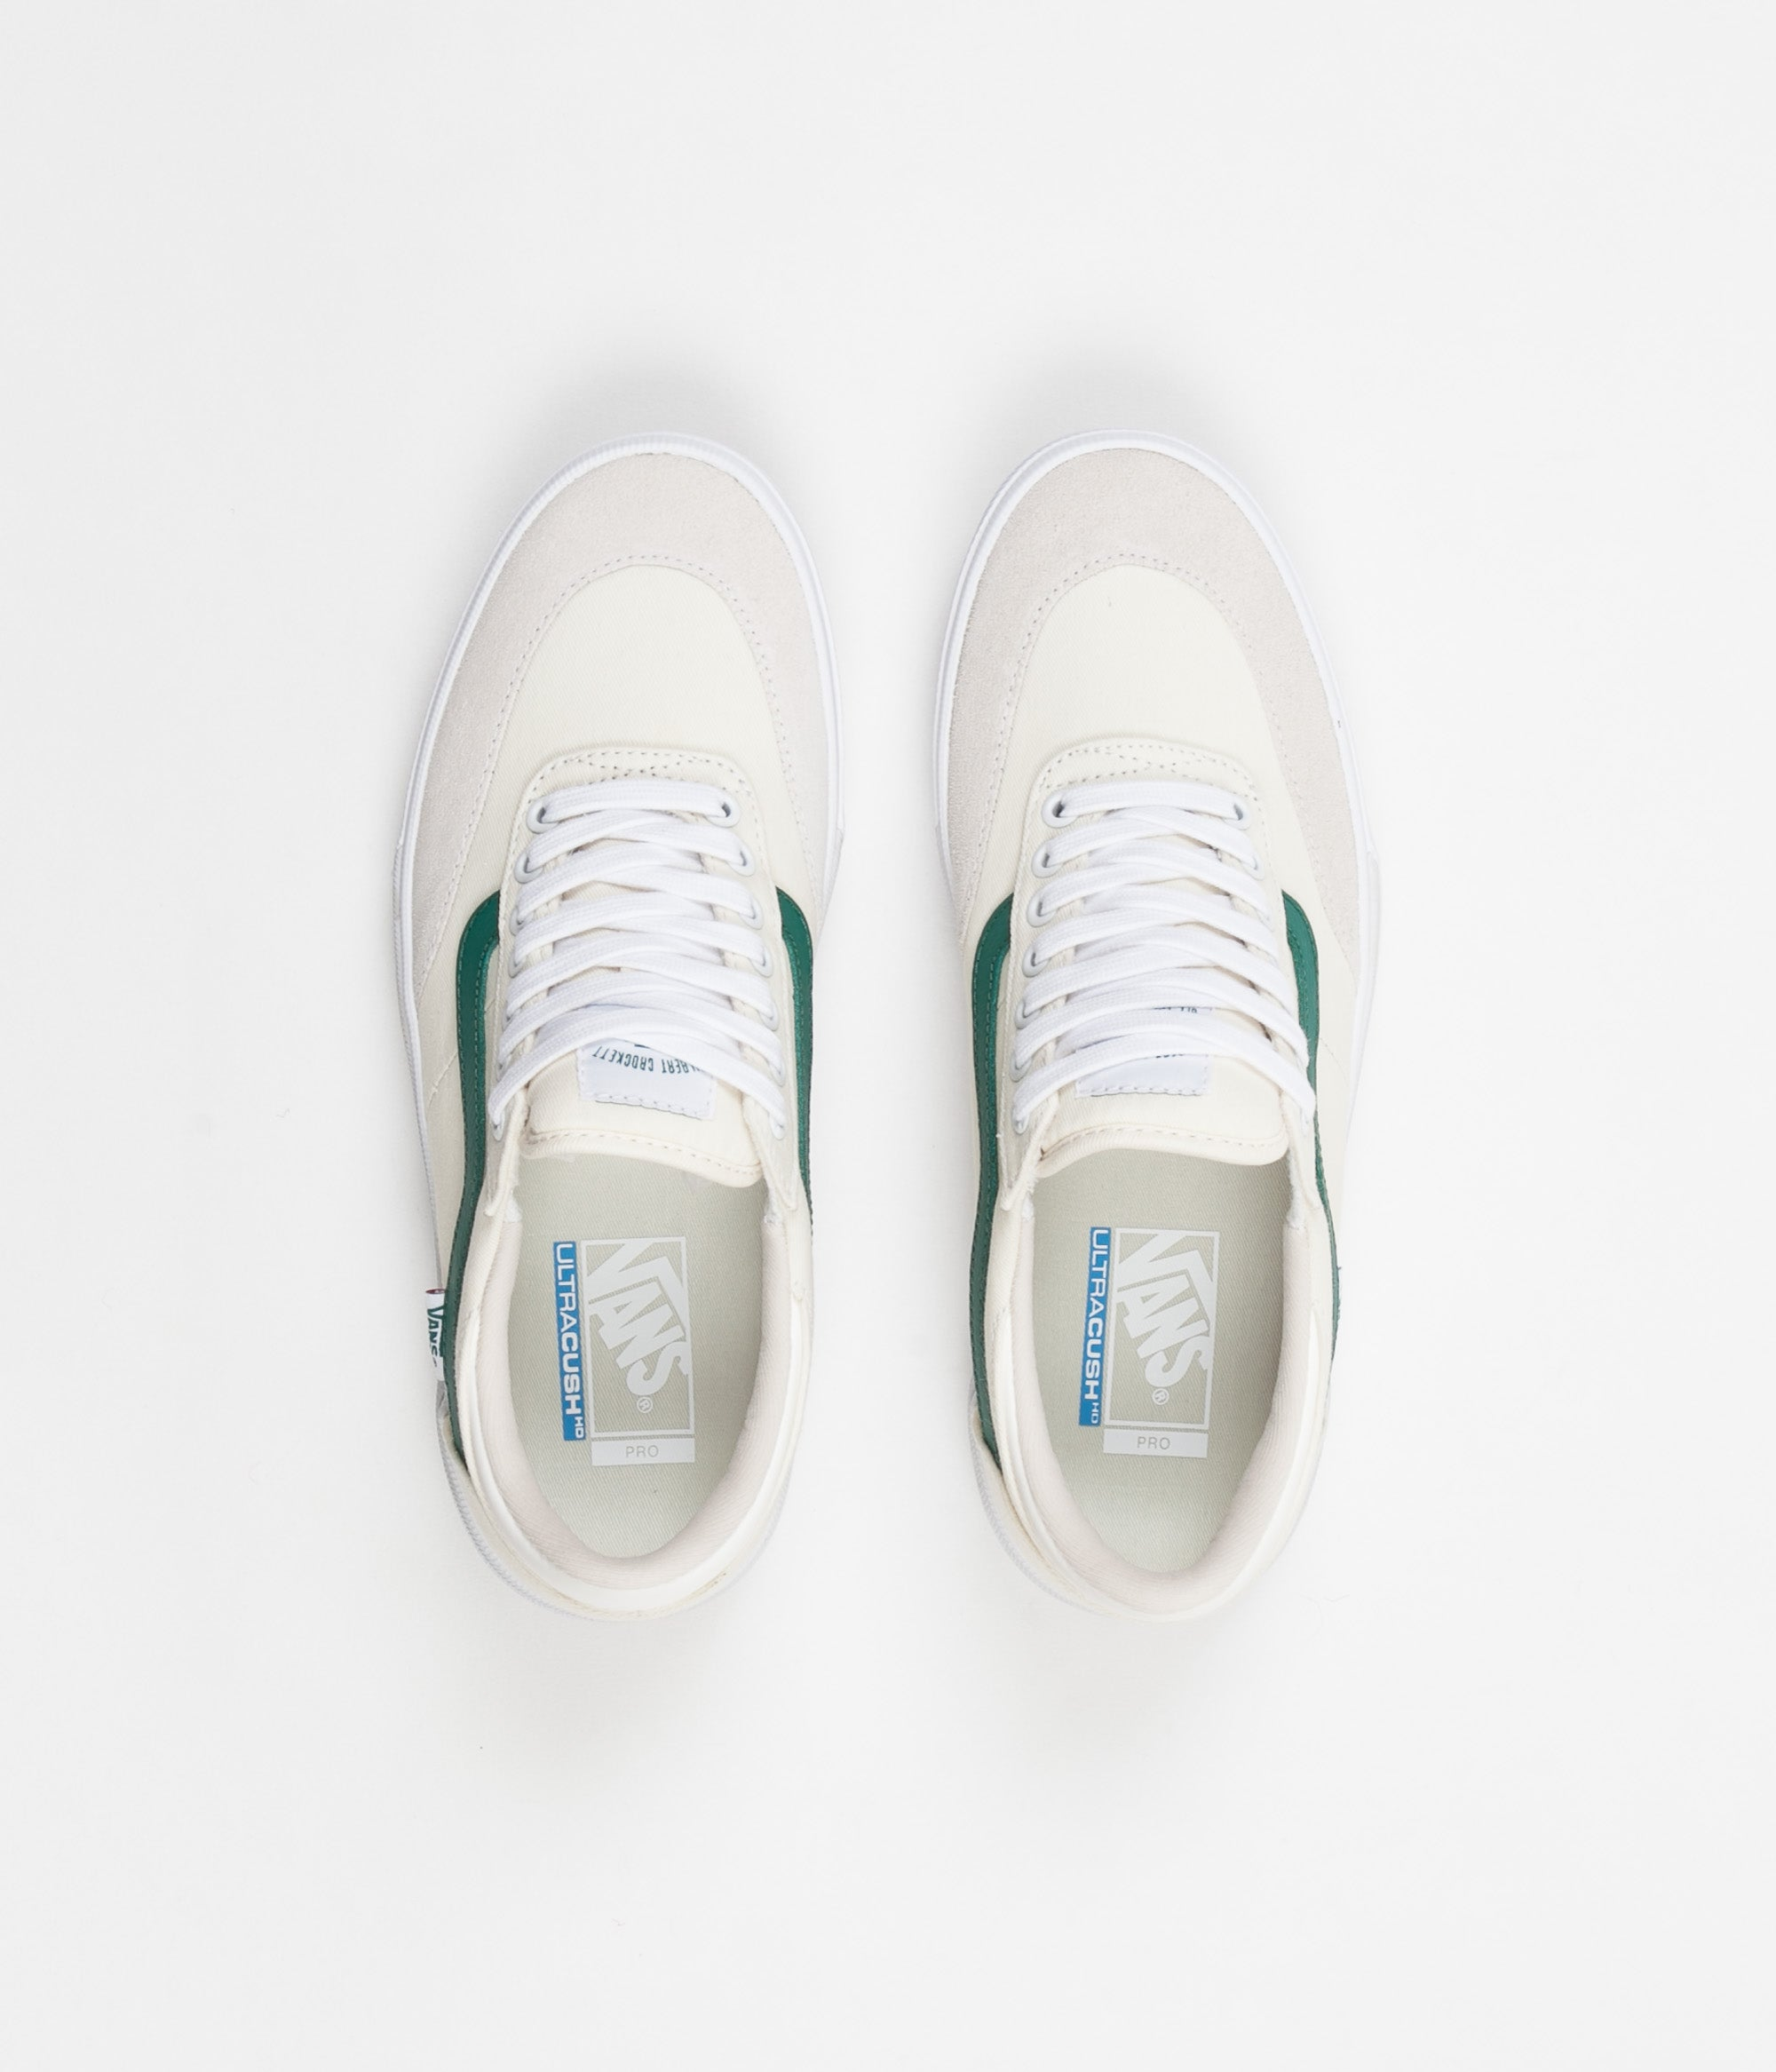 Vans Gilbert Crockett 2 Pro Centre Court Shoes - Classic White   Evergreen  ... f00b71b3f